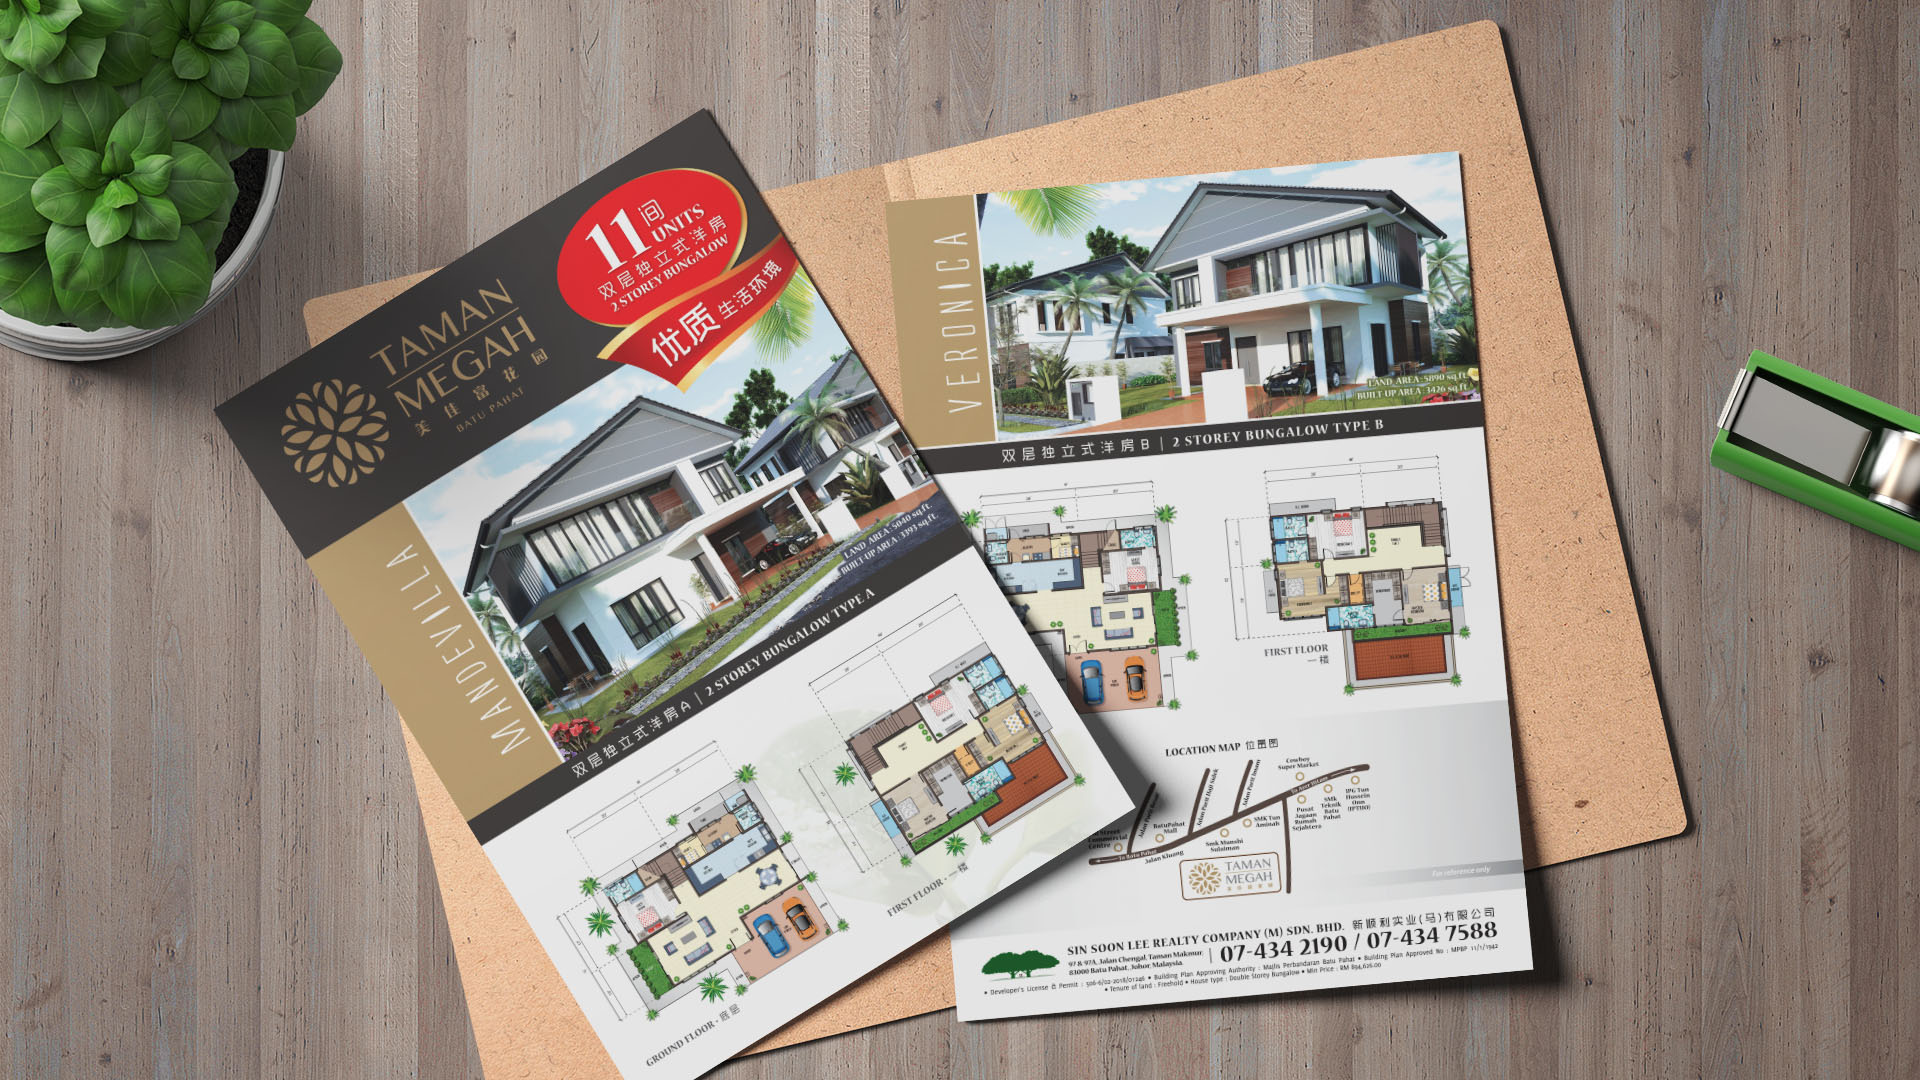 Taman Megah - A4 Flyer Design, 3 Folded Brochure Design, Signboard Design, Banner Design & Direction Board Design